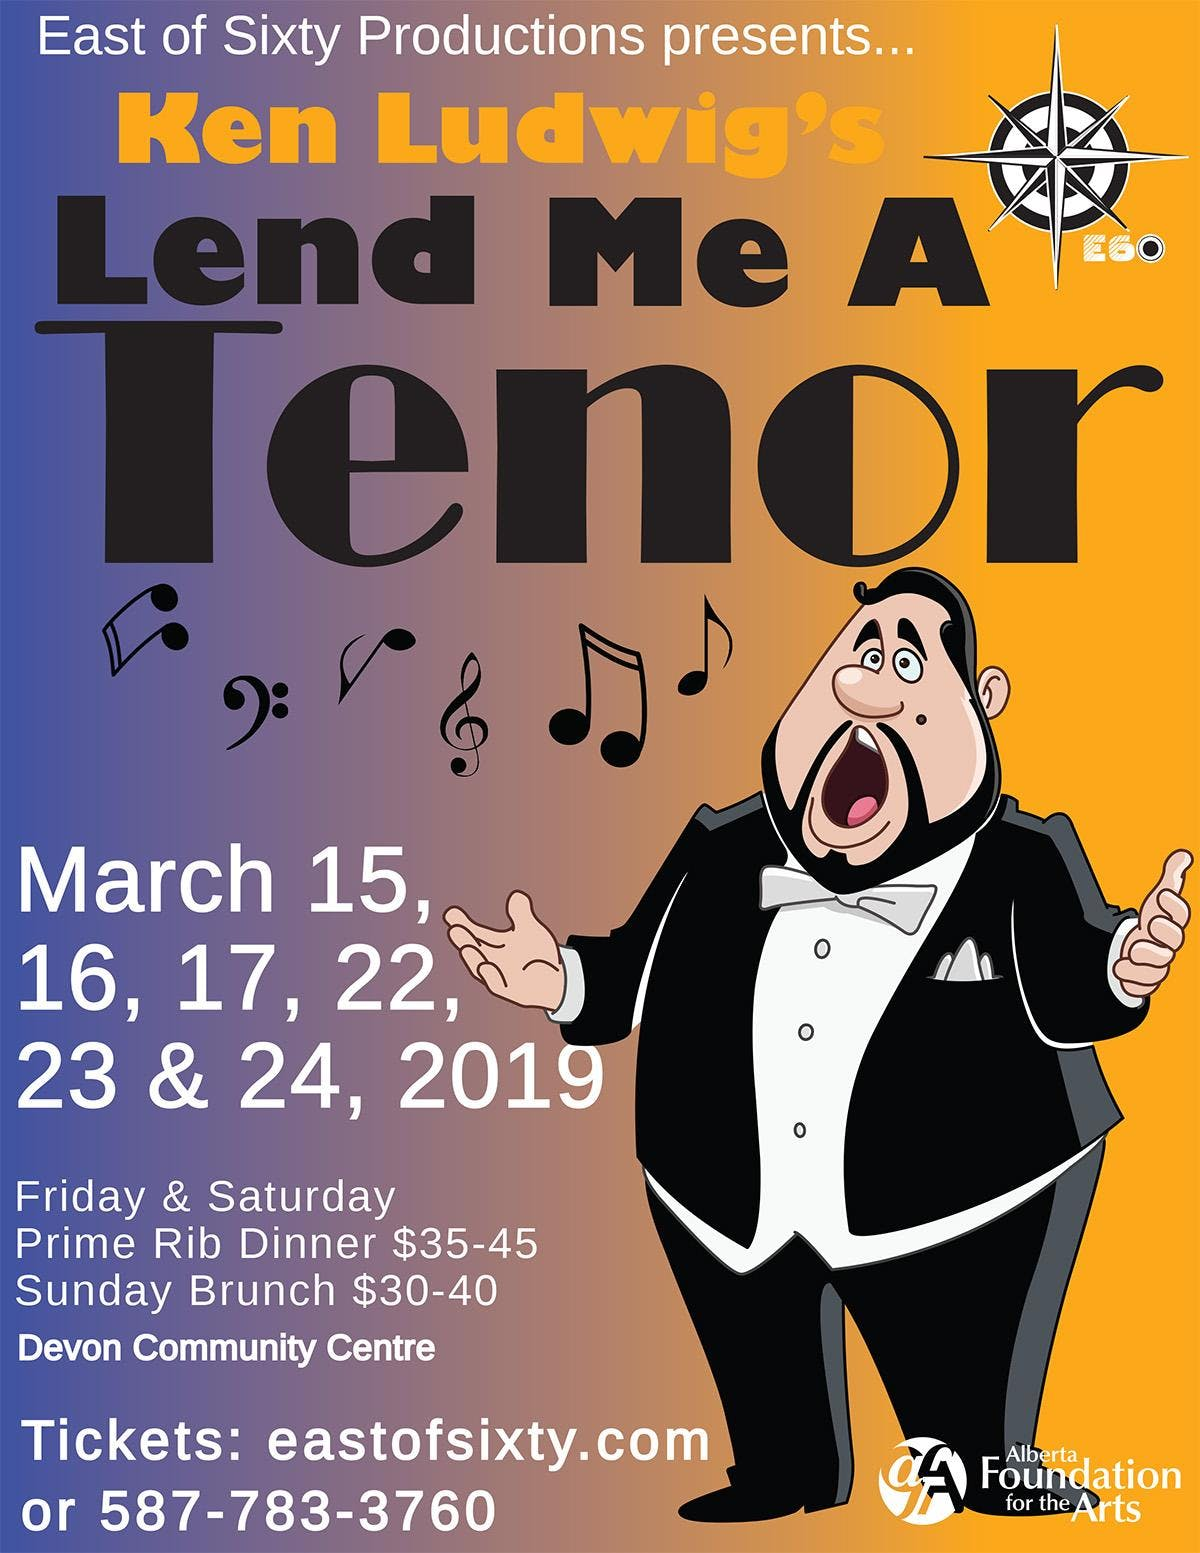 Lend Me A Tenor Friday March 22